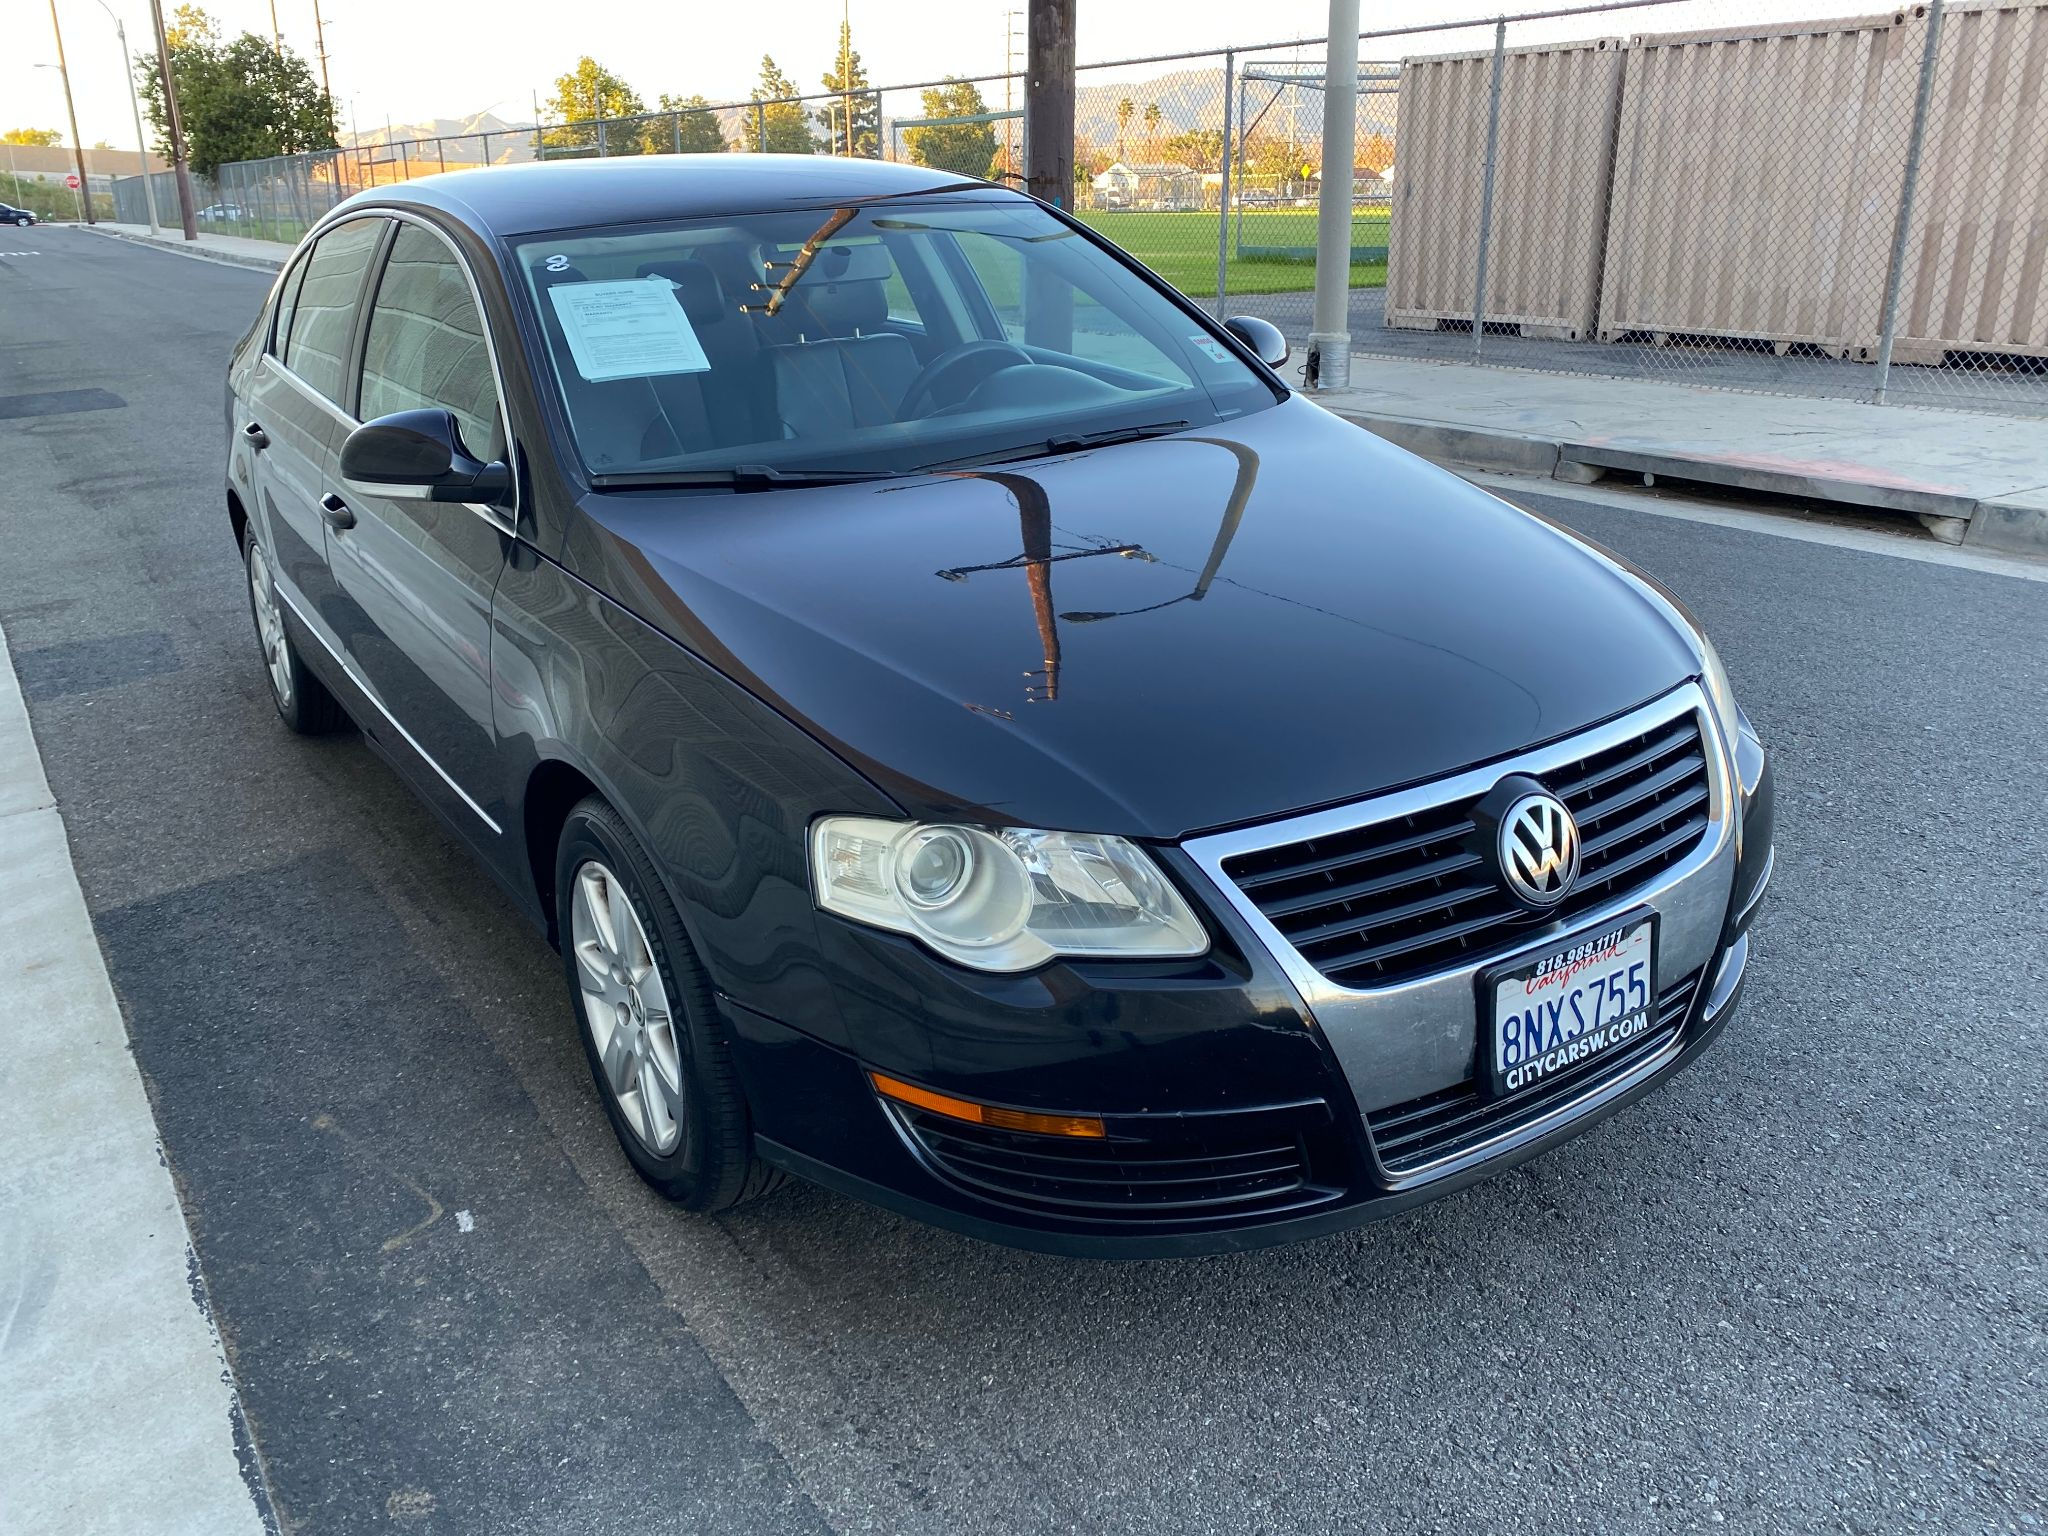 2008 Volkswagen Passat Sedan Turbo